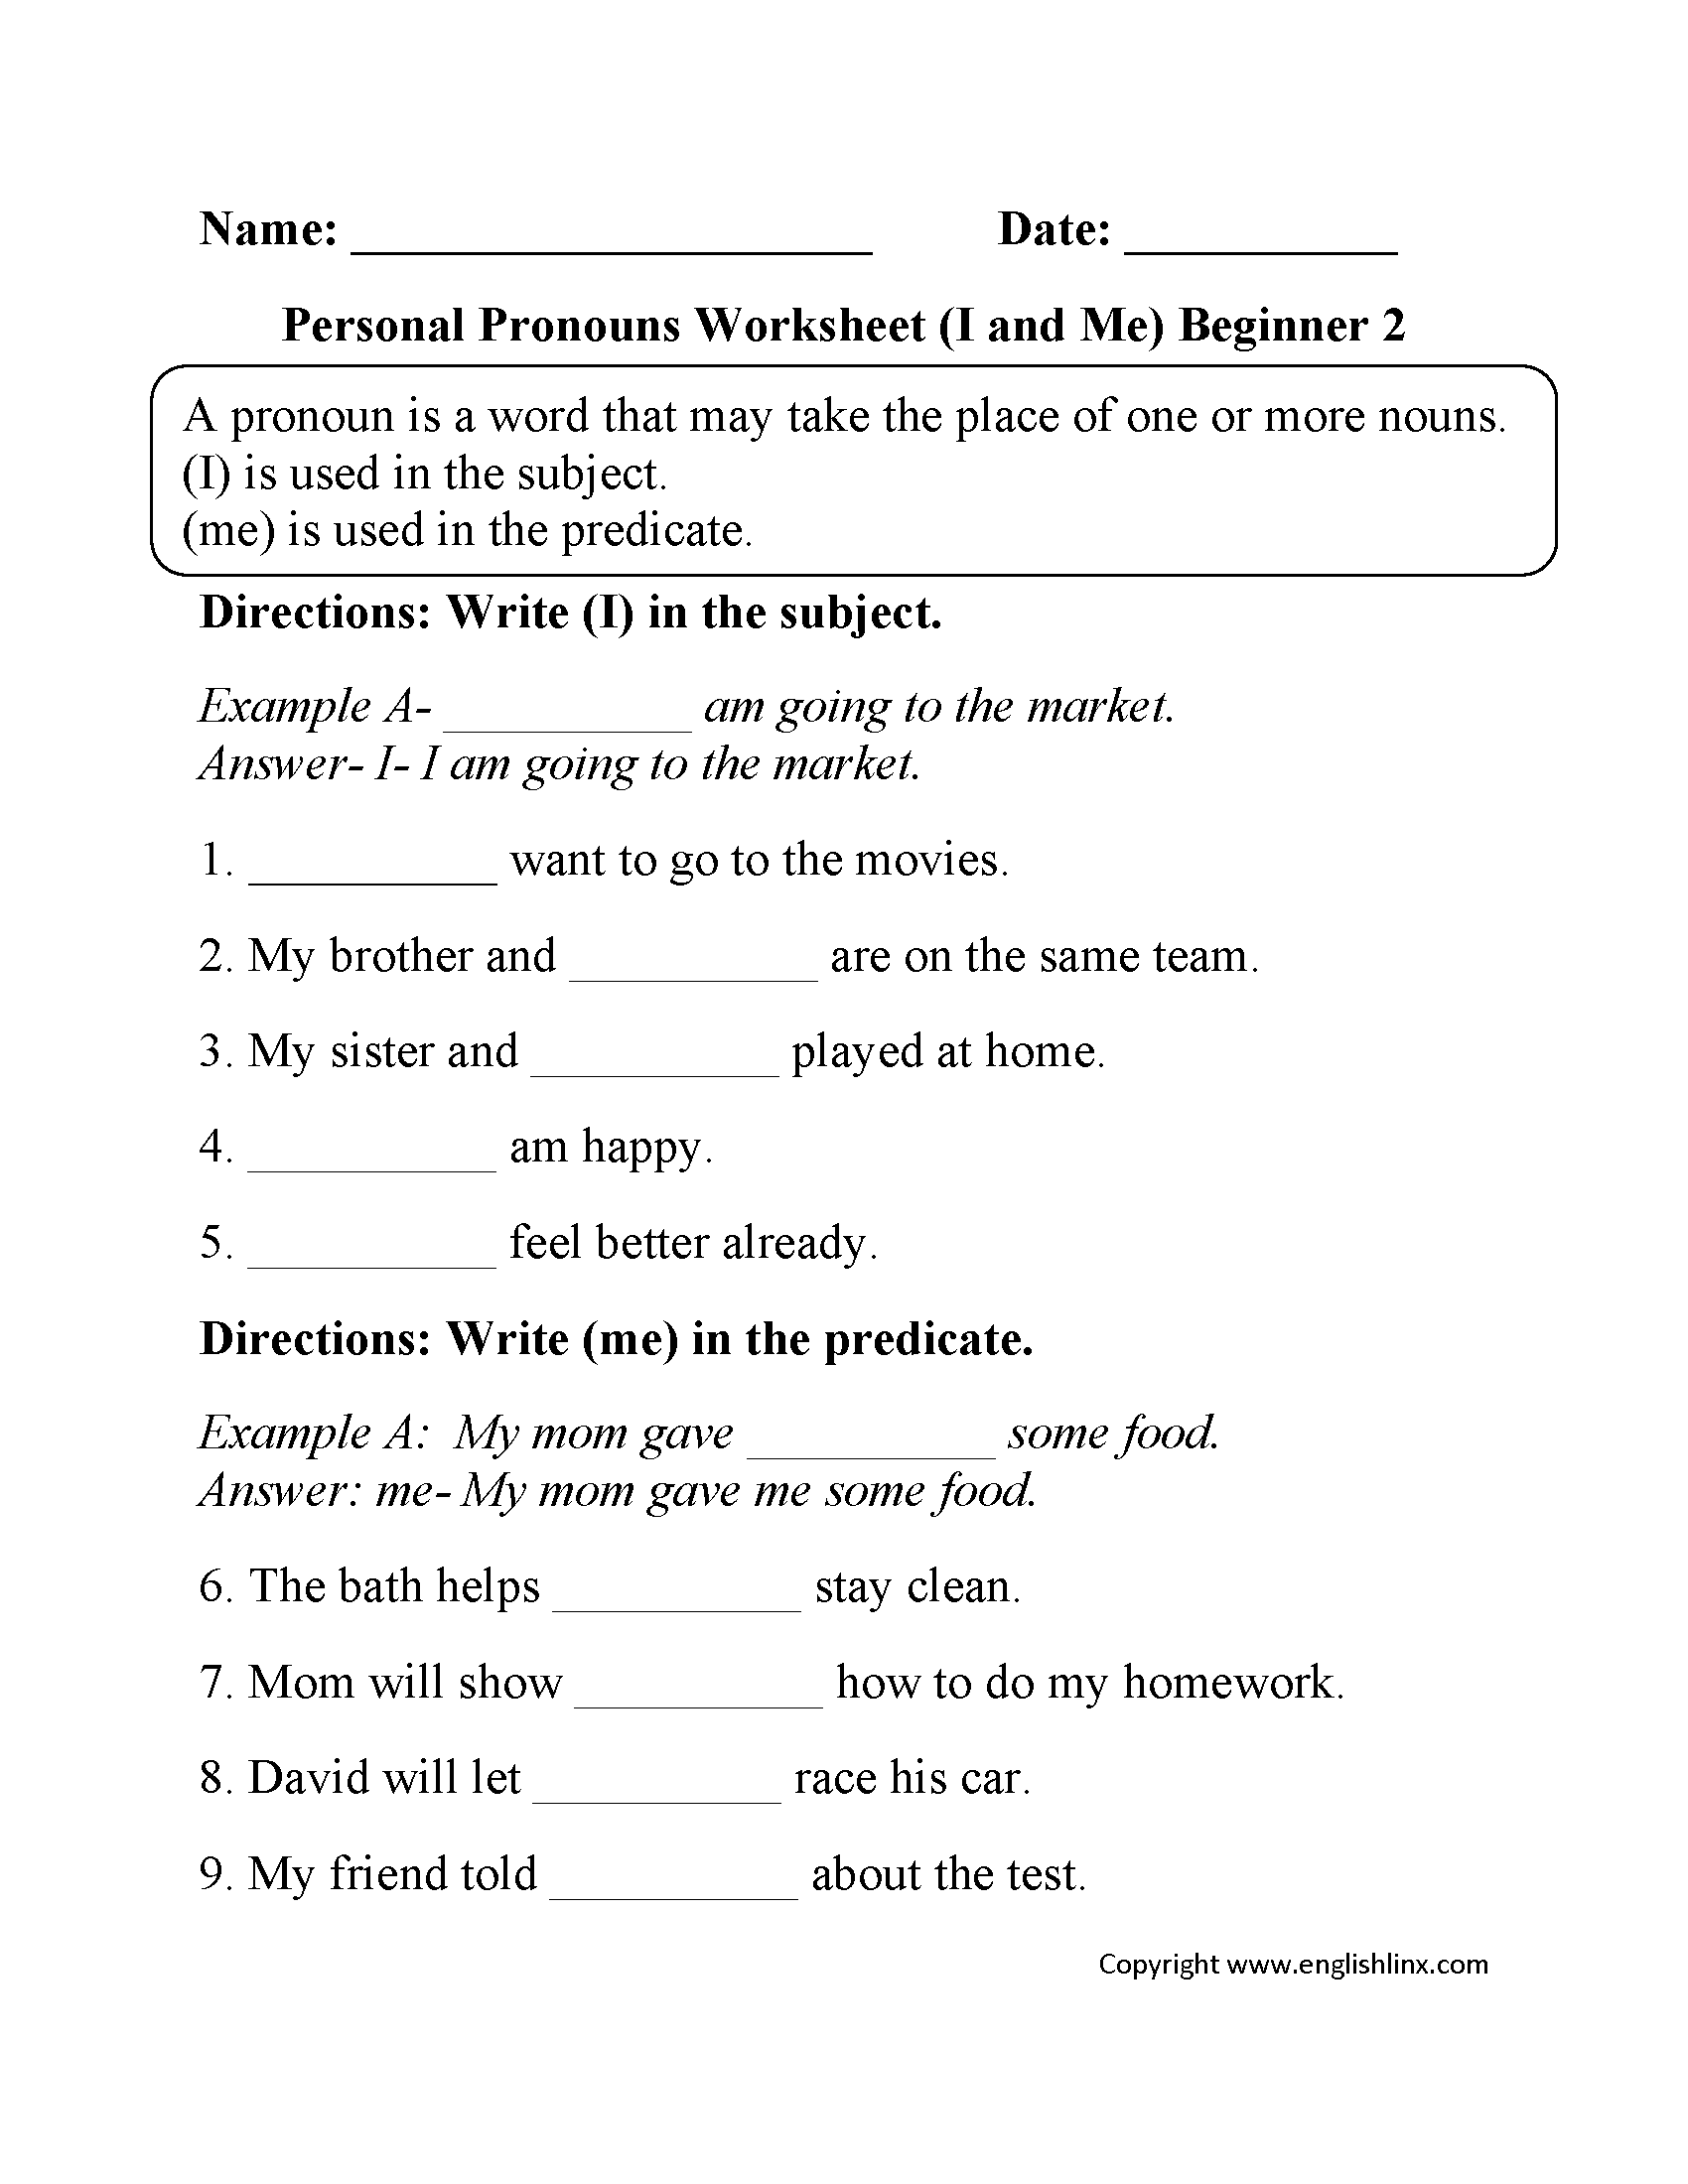 worksheet Esl Subject Pronouns Worksheet i and me personal pronouns worksheets part 2 beginner voice beginner